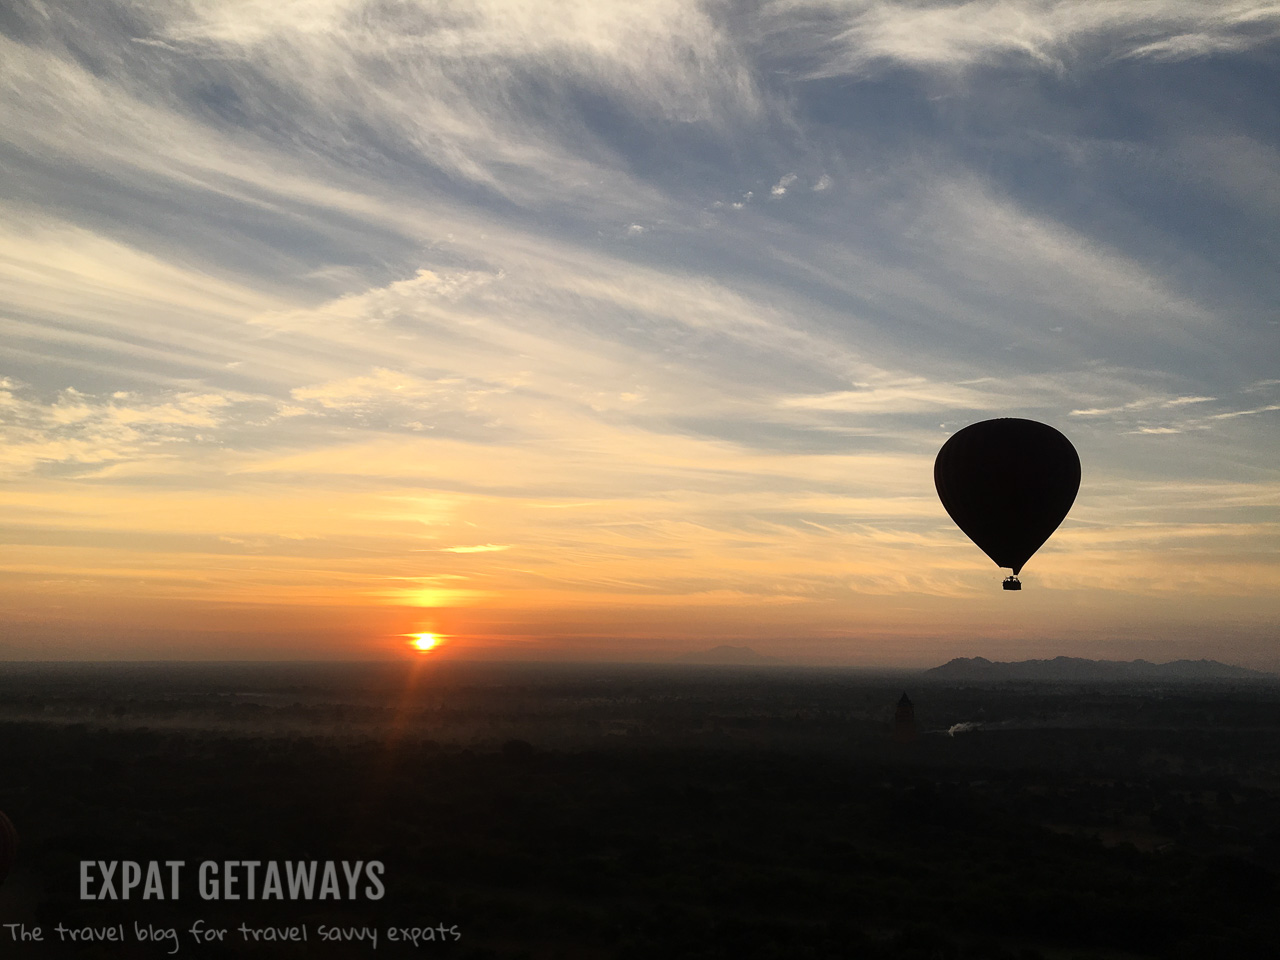 The first balloon lifts into the air as the sun starts to rise.